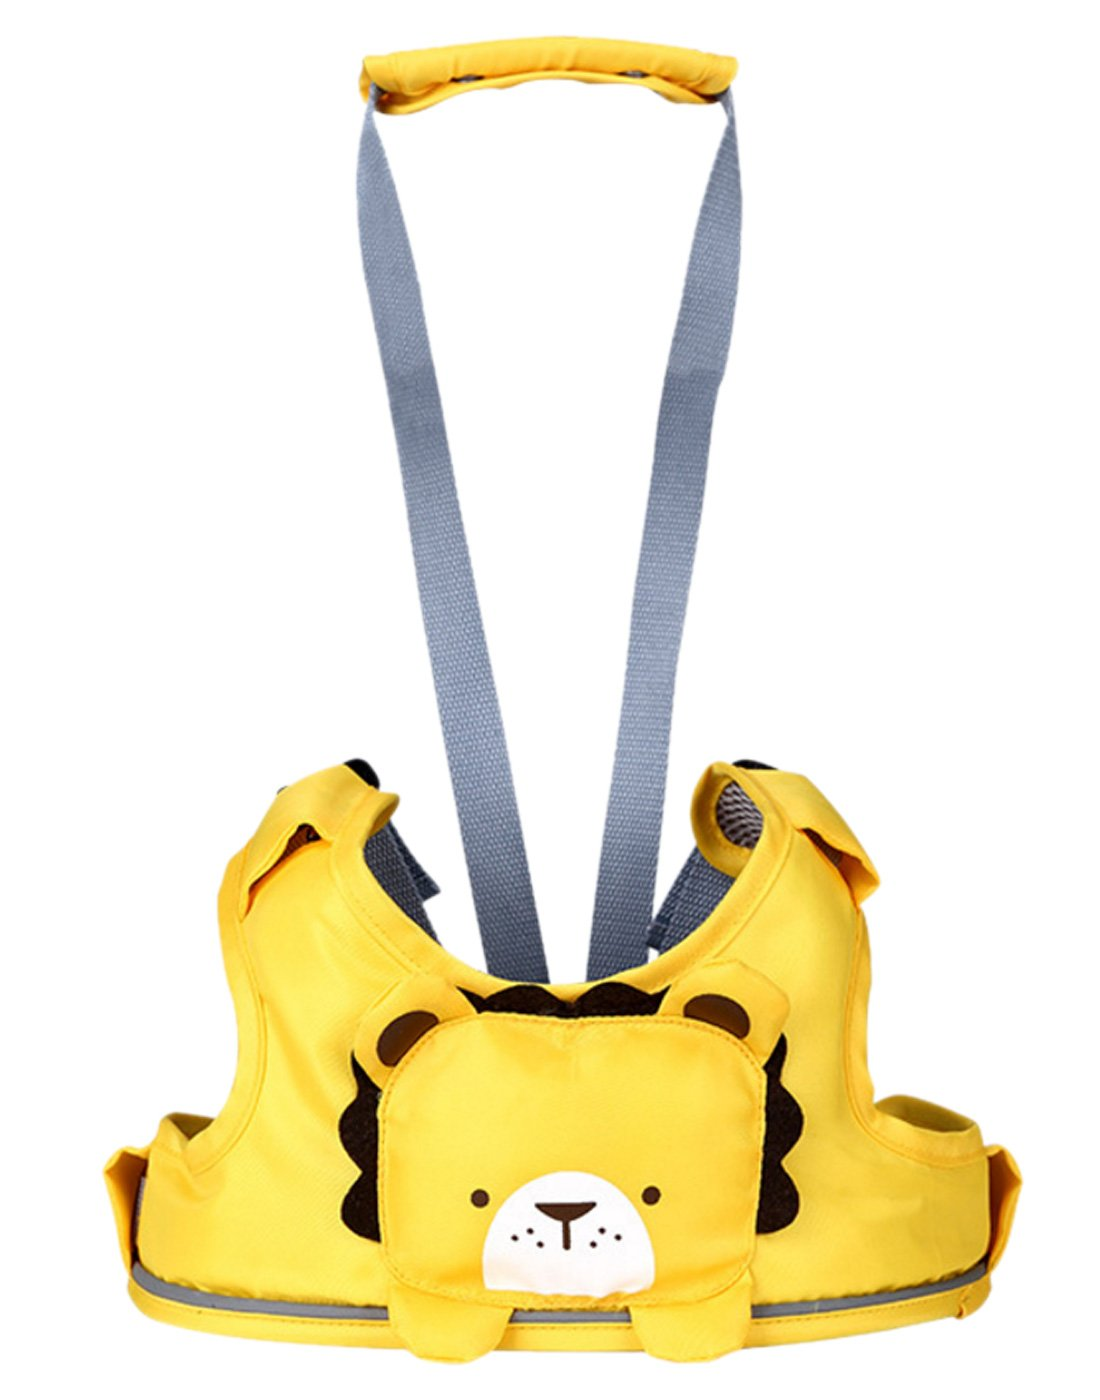 Happy Cherry 3-in-1 Toddler Walking Assitant Harness + Portable High Chair + Cart Safety Strap, Cartoon Animal Learning Walkers, Lightweight & Washable, Yellow